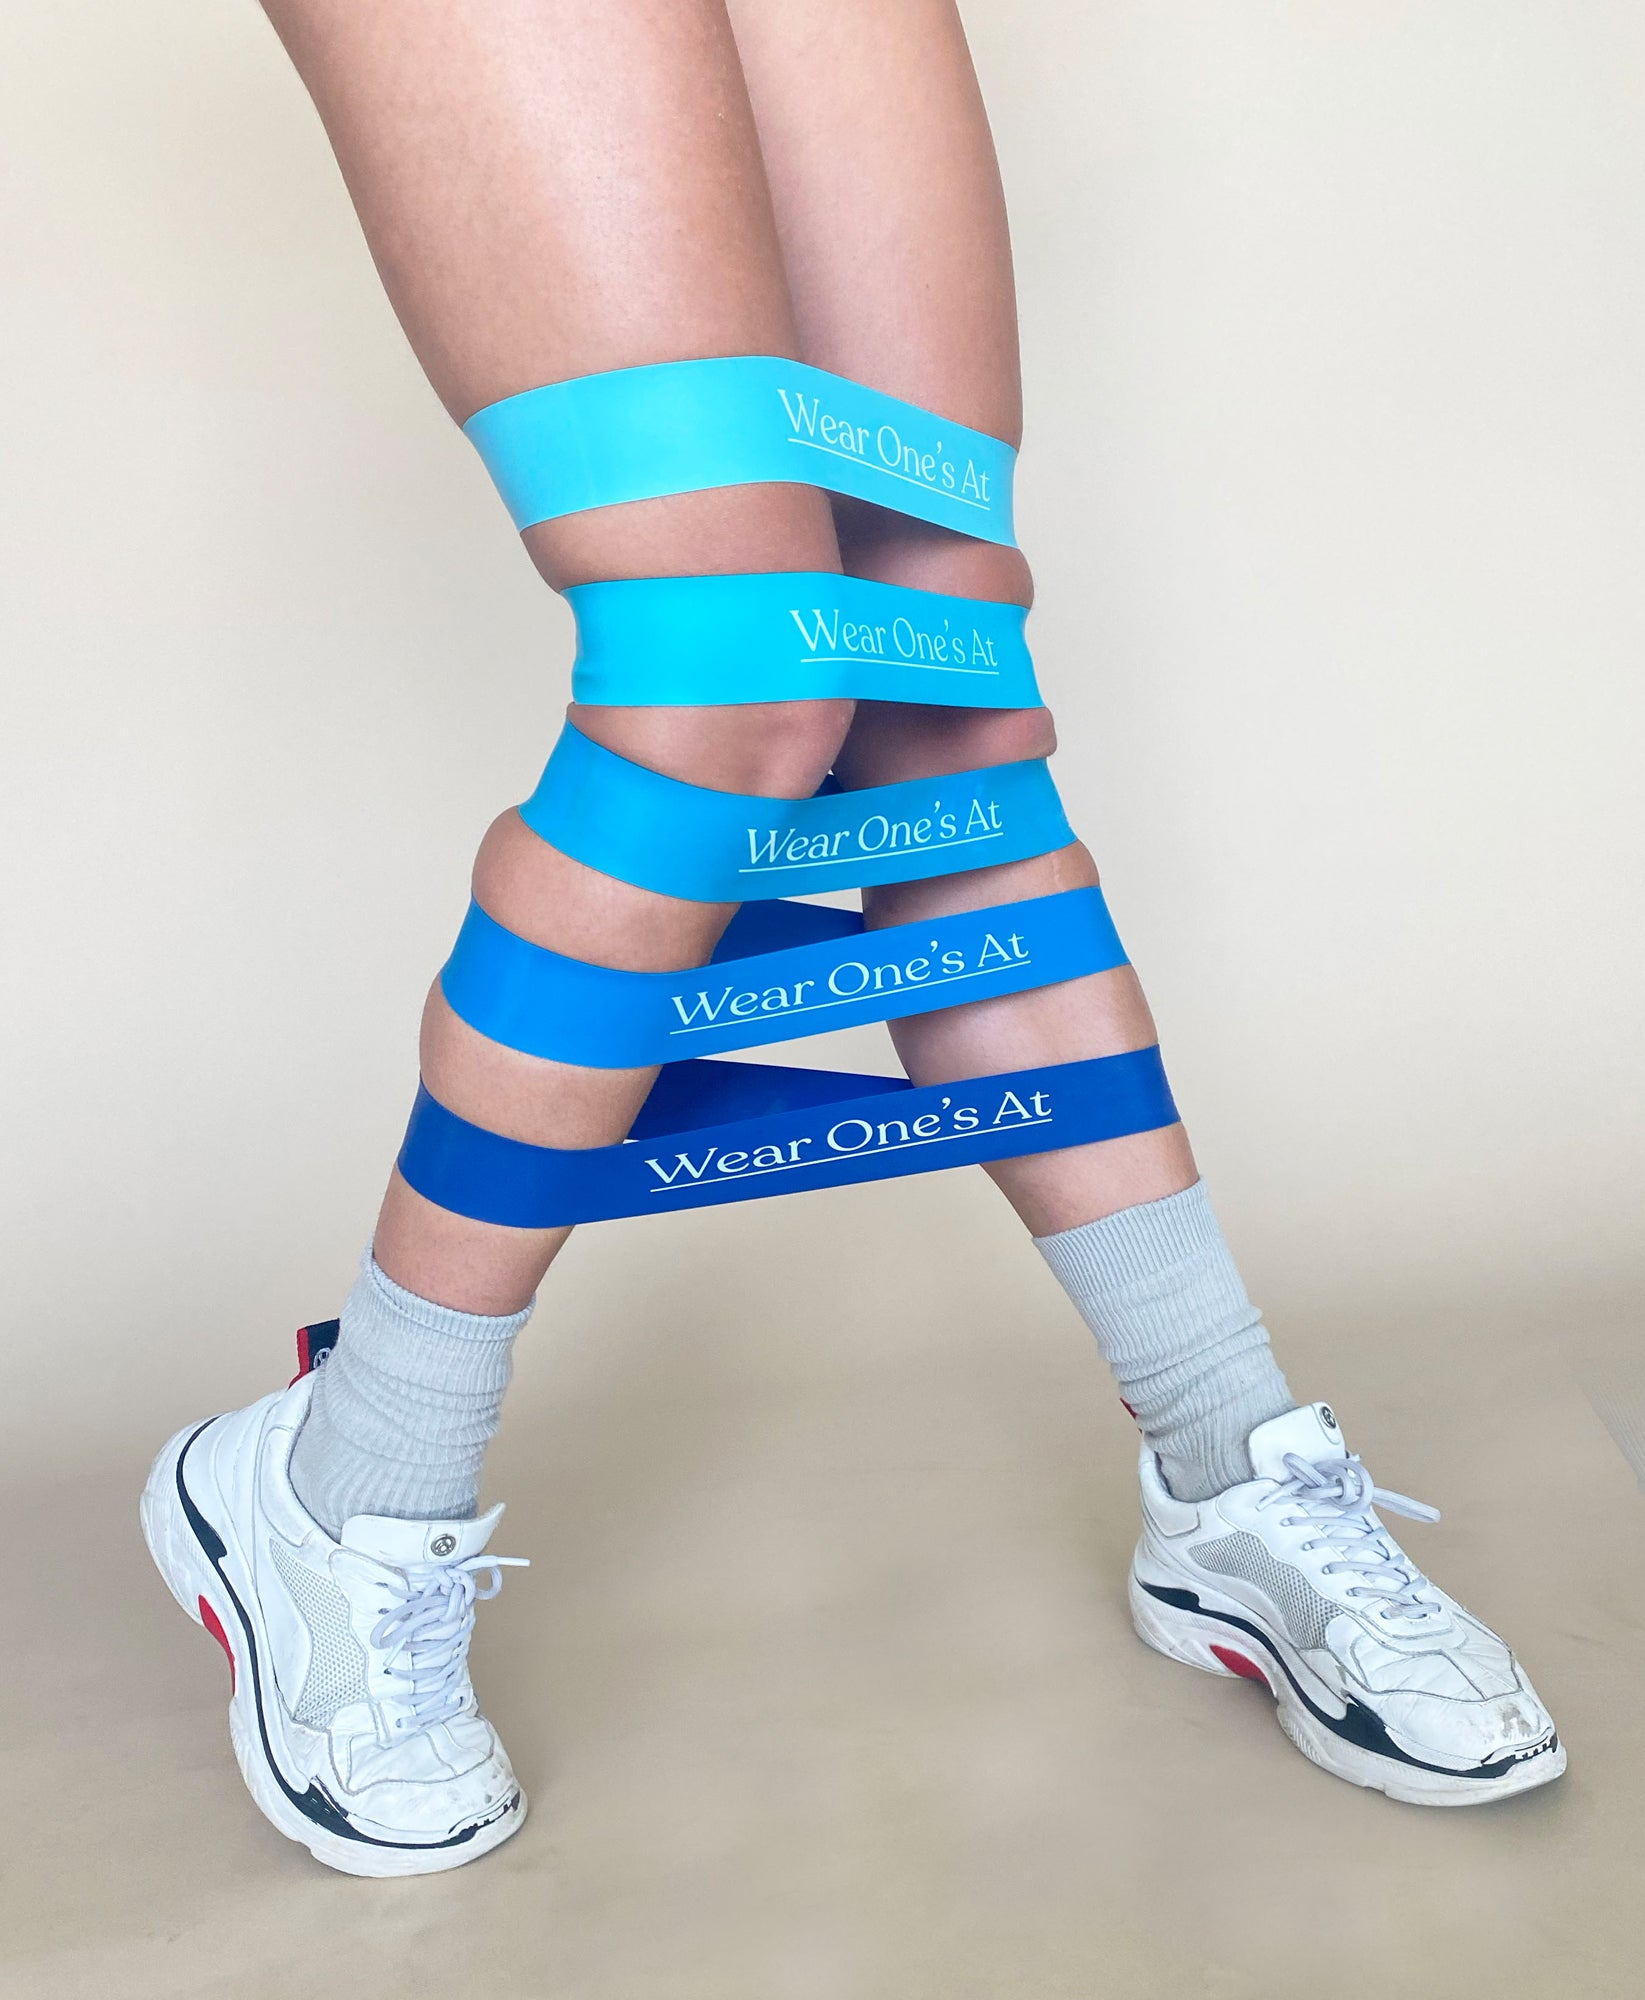 Wear Ones At Resistance Bands in Blue on Model